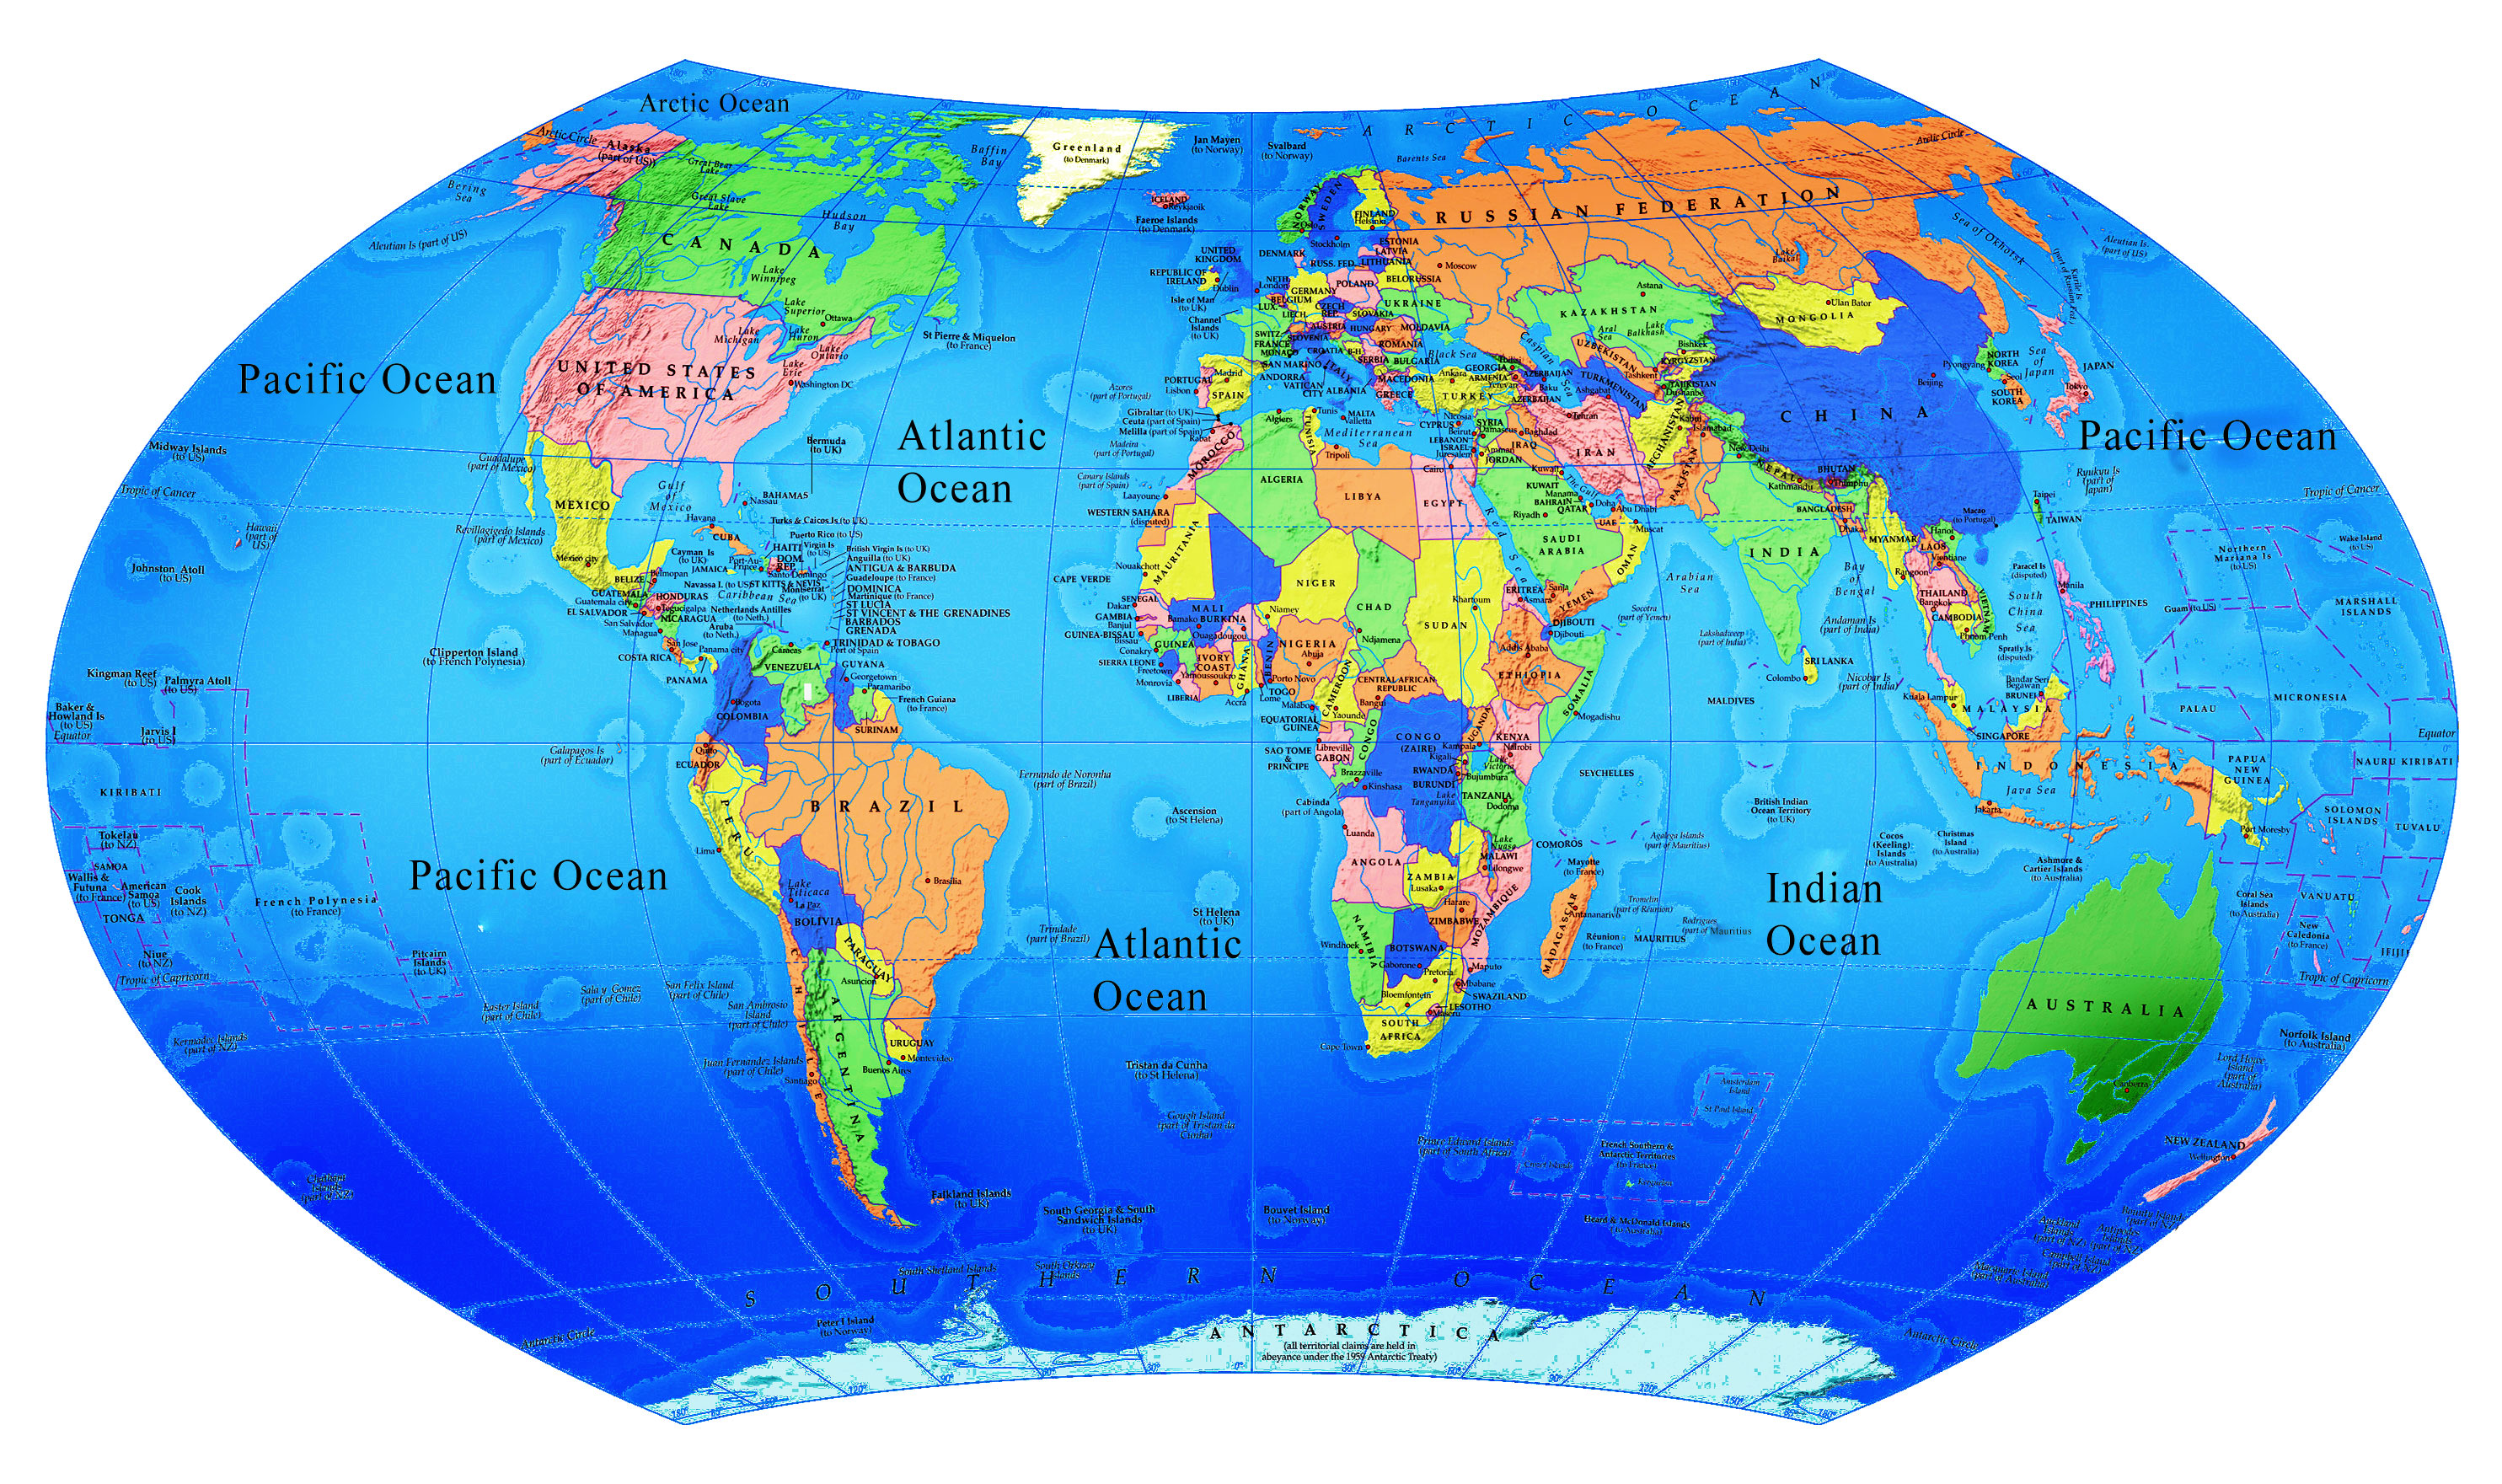 World map wallpapers high quality download free world map high quality wallpaper gumiabroncs Image collections